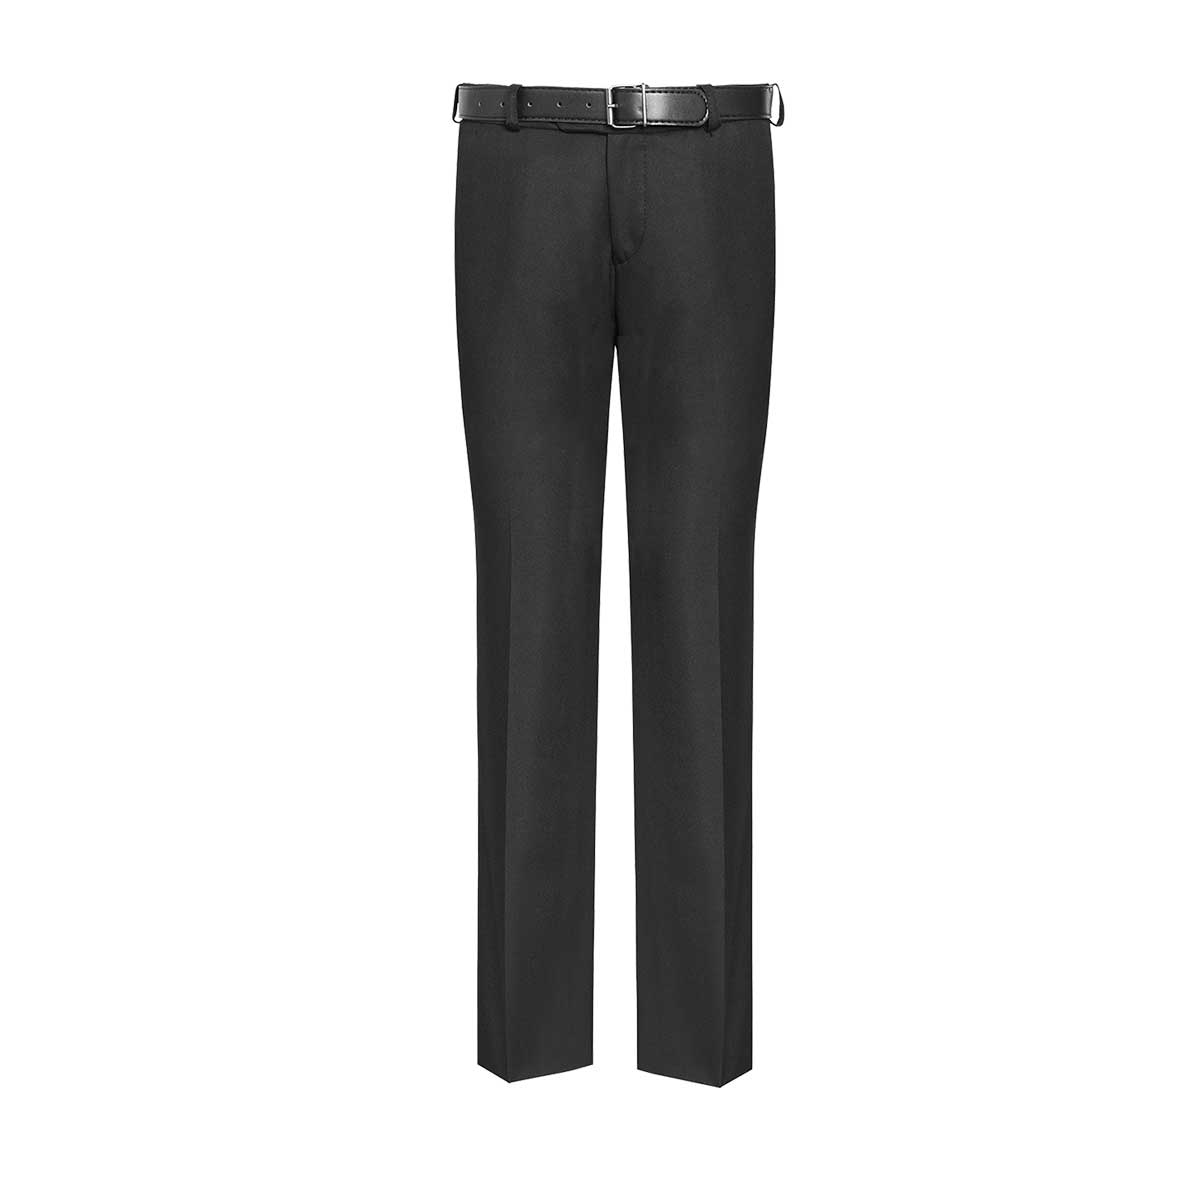 WHS Boys Standard-Fit Trouser.